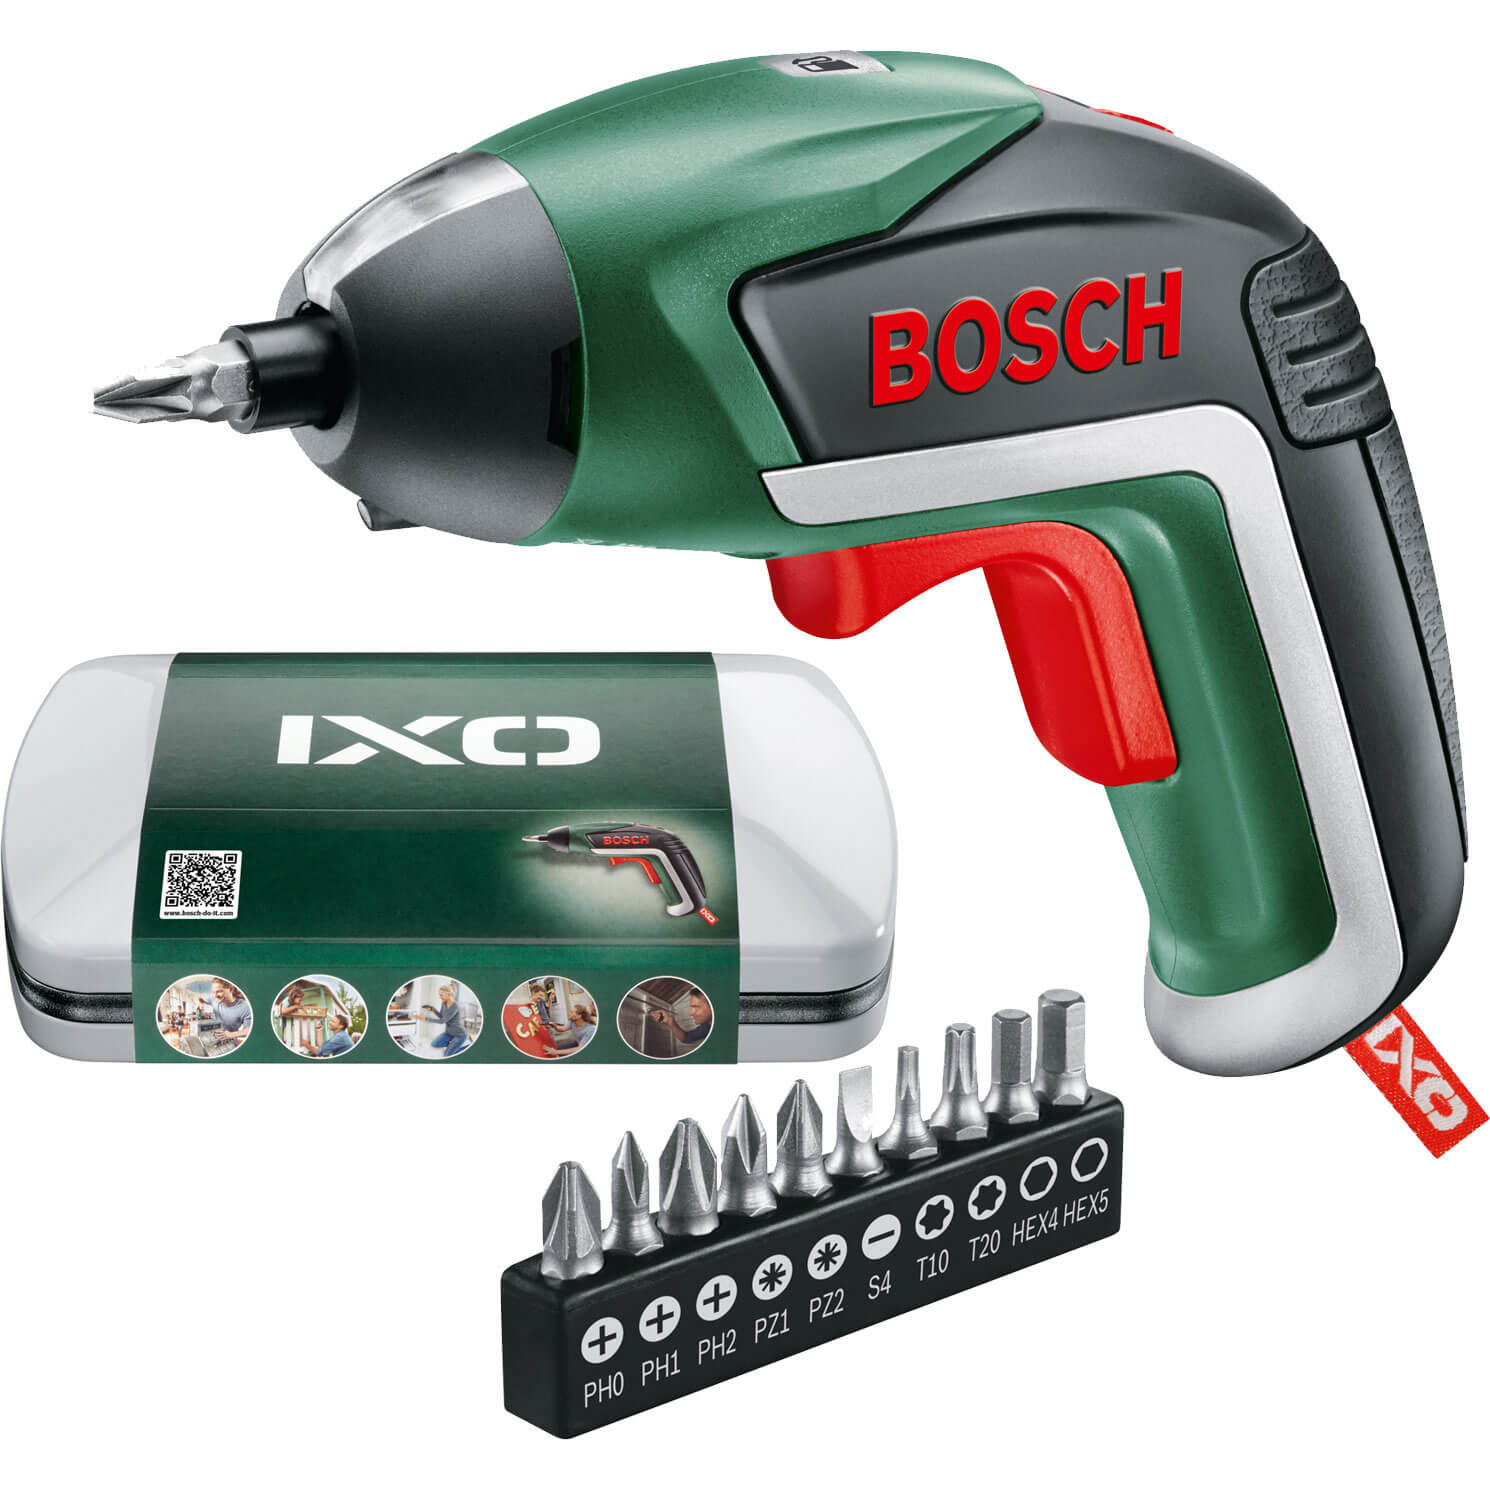 Bosch Ixo V Test : bosch ixo v cordless screwdriver screwdrivers ~ Watch28wear.com Haus und Dekorationen